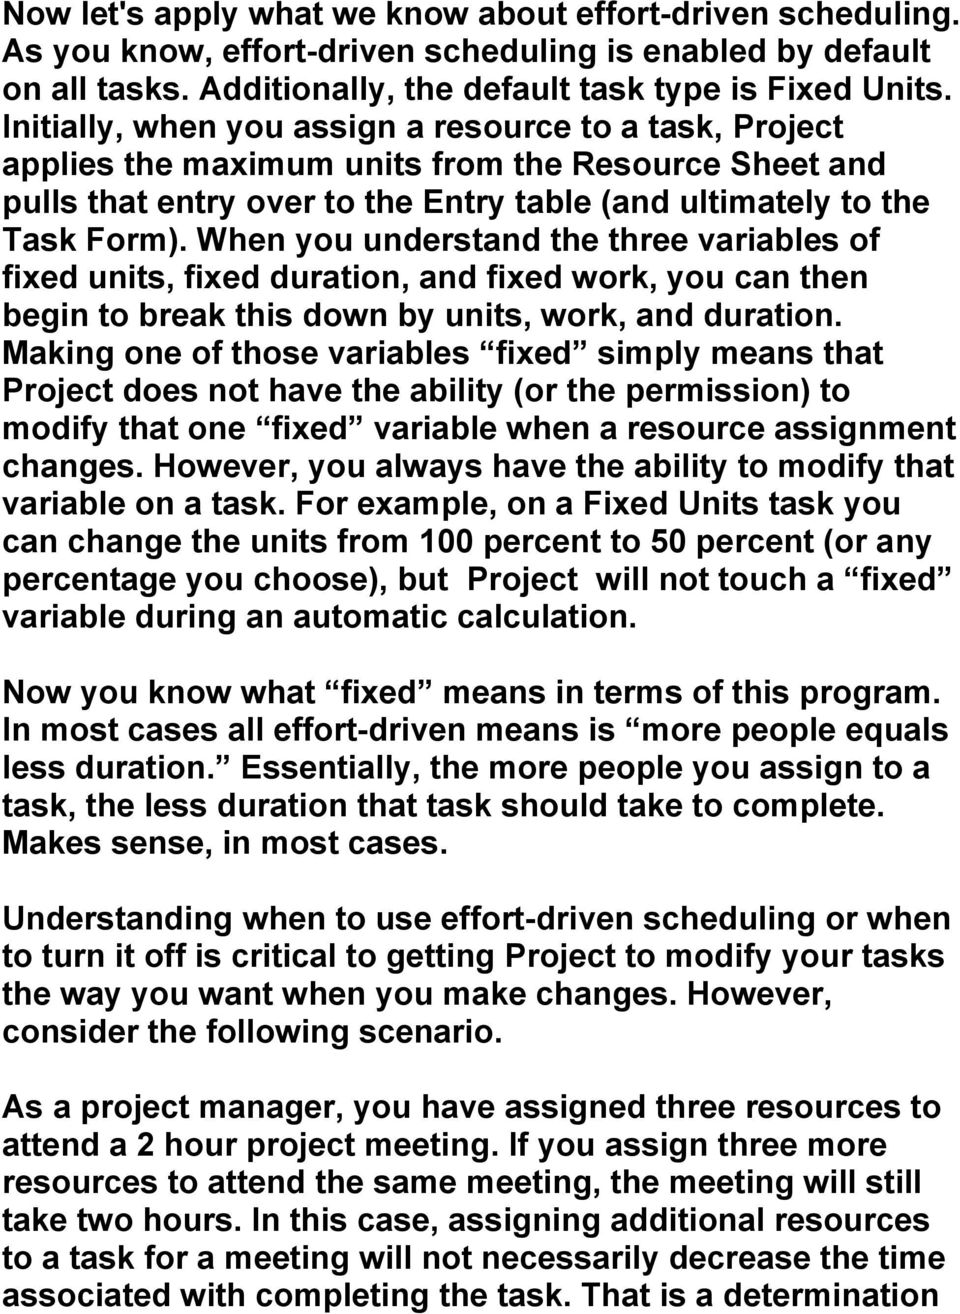 When you understand the three variables of fixed units, fixed duration, and fixed work, you can then begin to break this down by units, work, and duration.